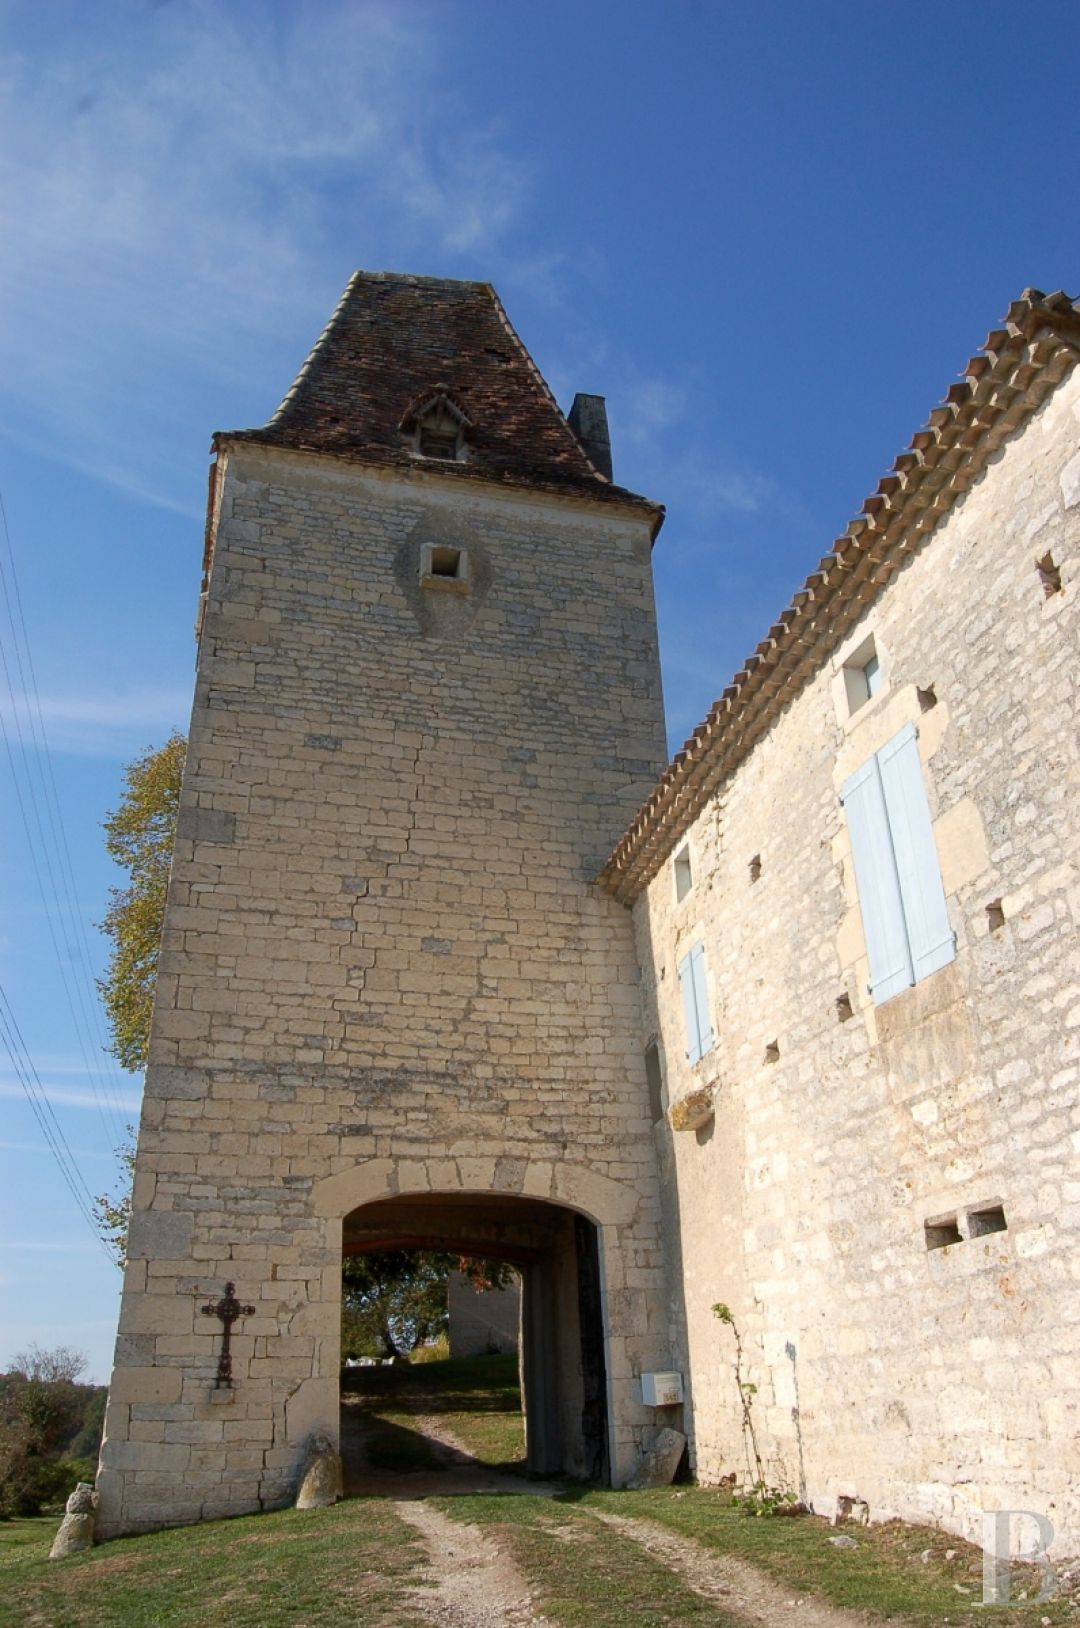 property for sale France midi pyrenees residences historic - 4 zoom